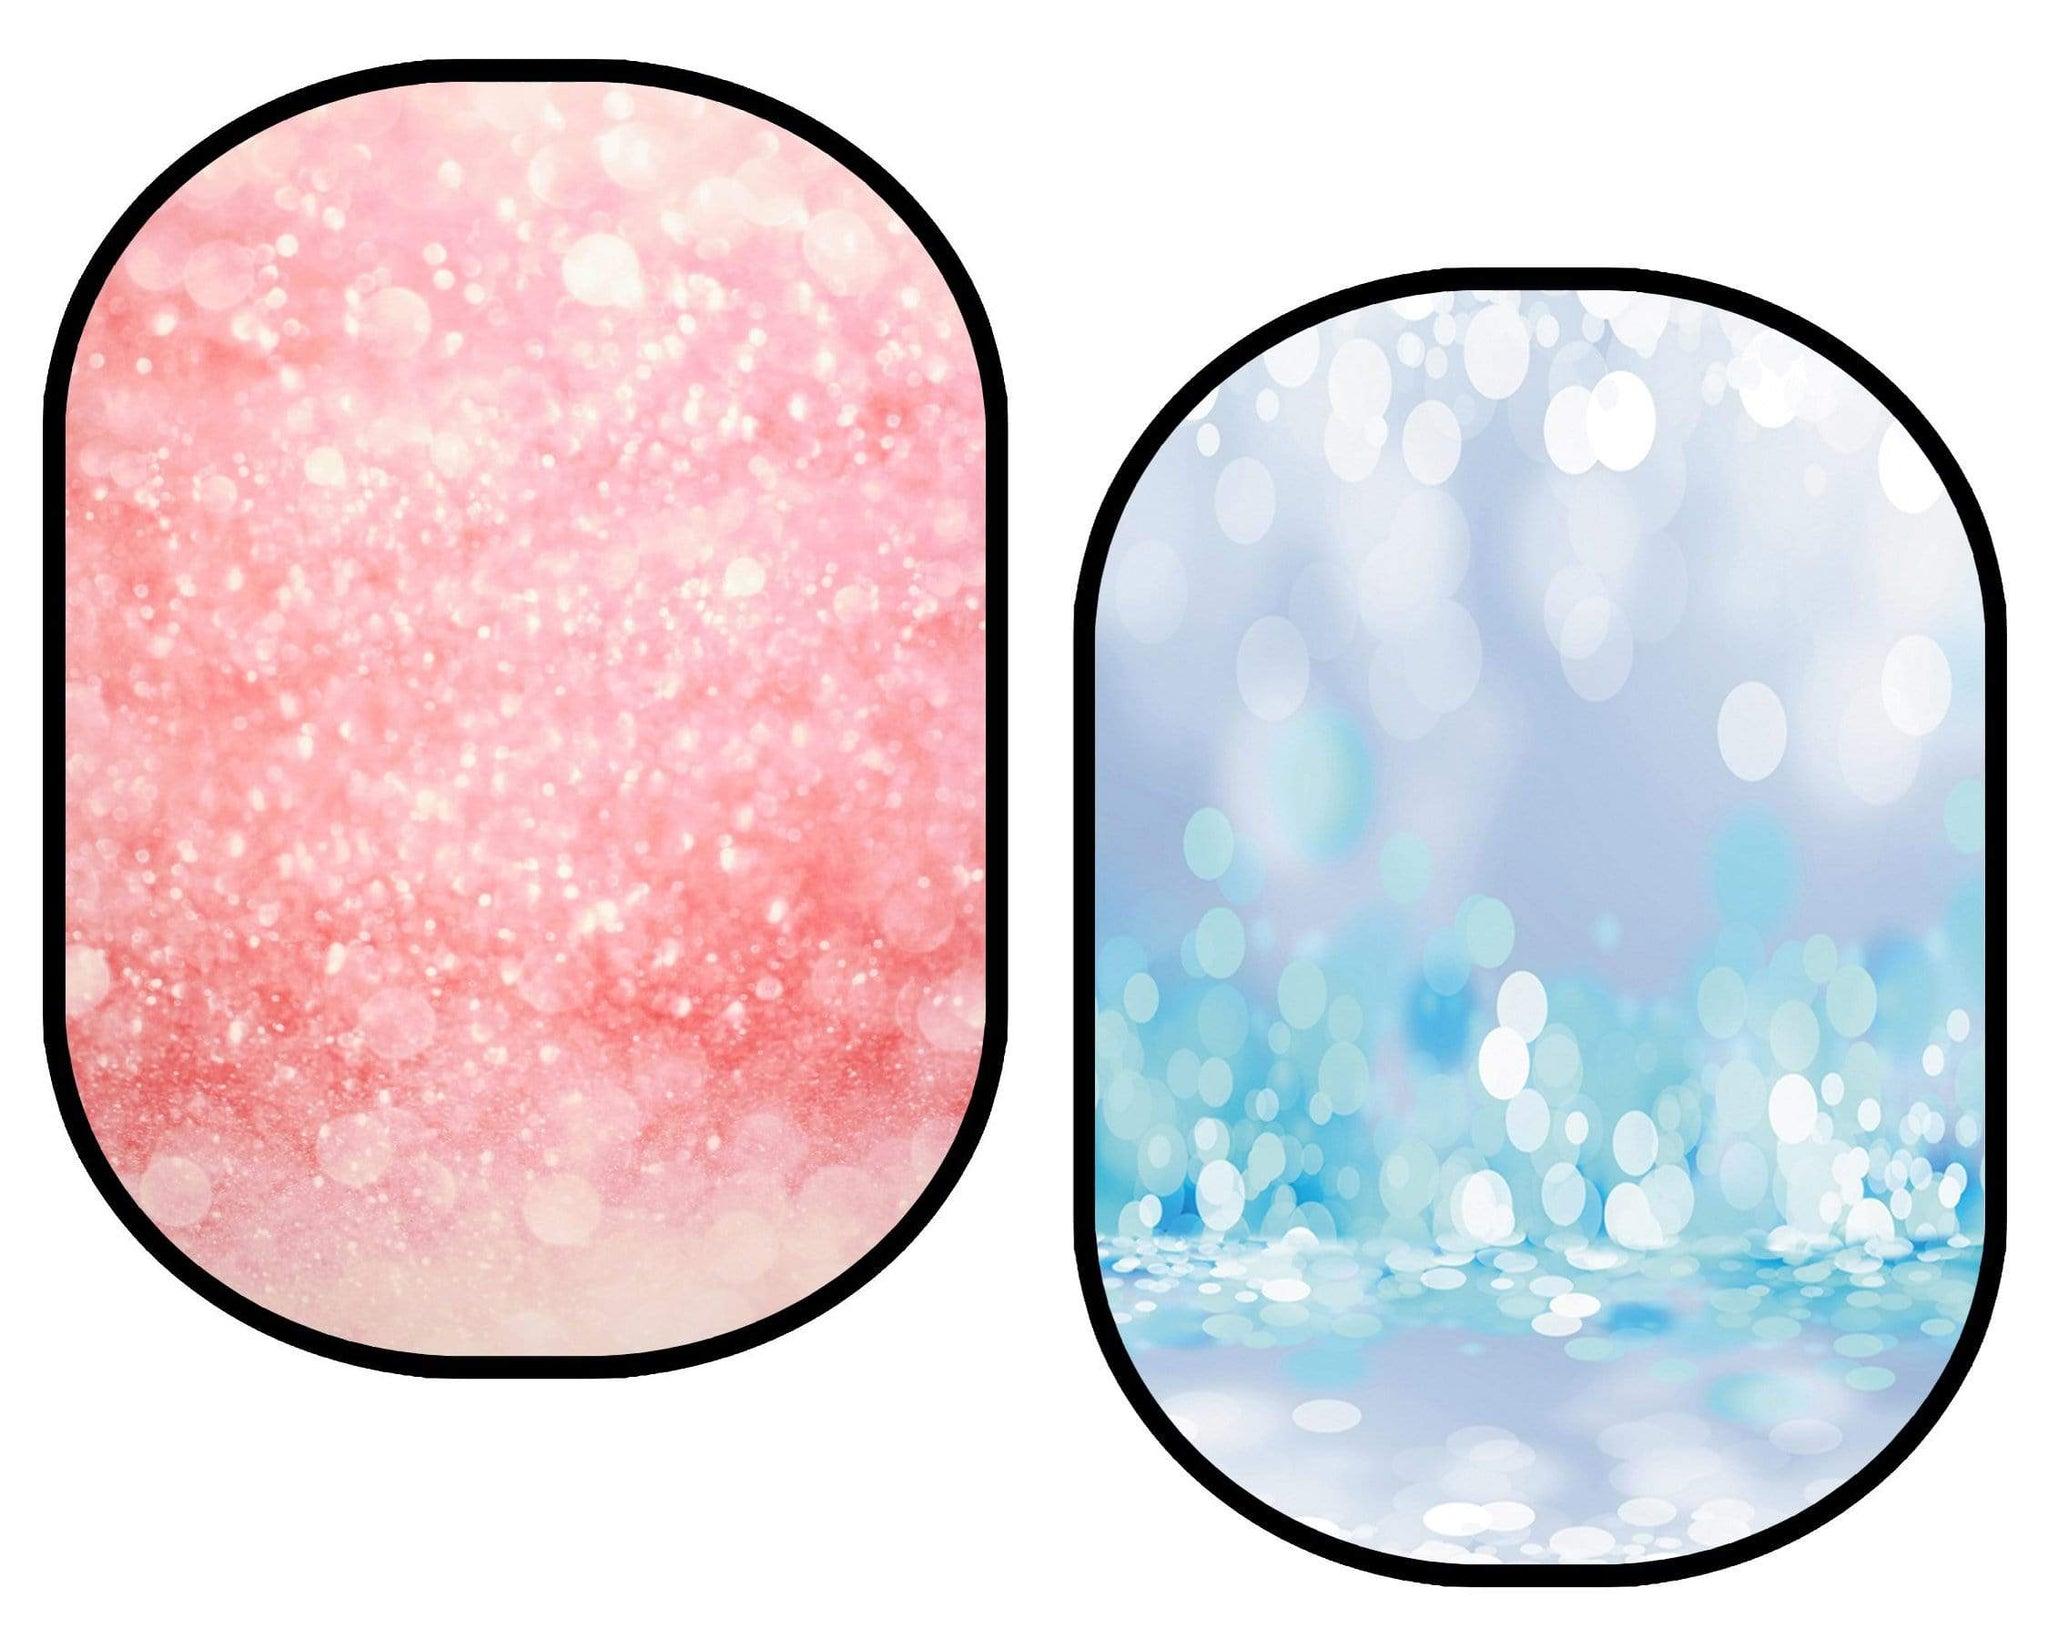 Load image into Gallery viewer, Katebackdrop£ºKate Pink Sequins Bokeh/ Blue Sequins Bokeh Collapsible Backdrop Photography 5X6.5ft(1.5x2m)